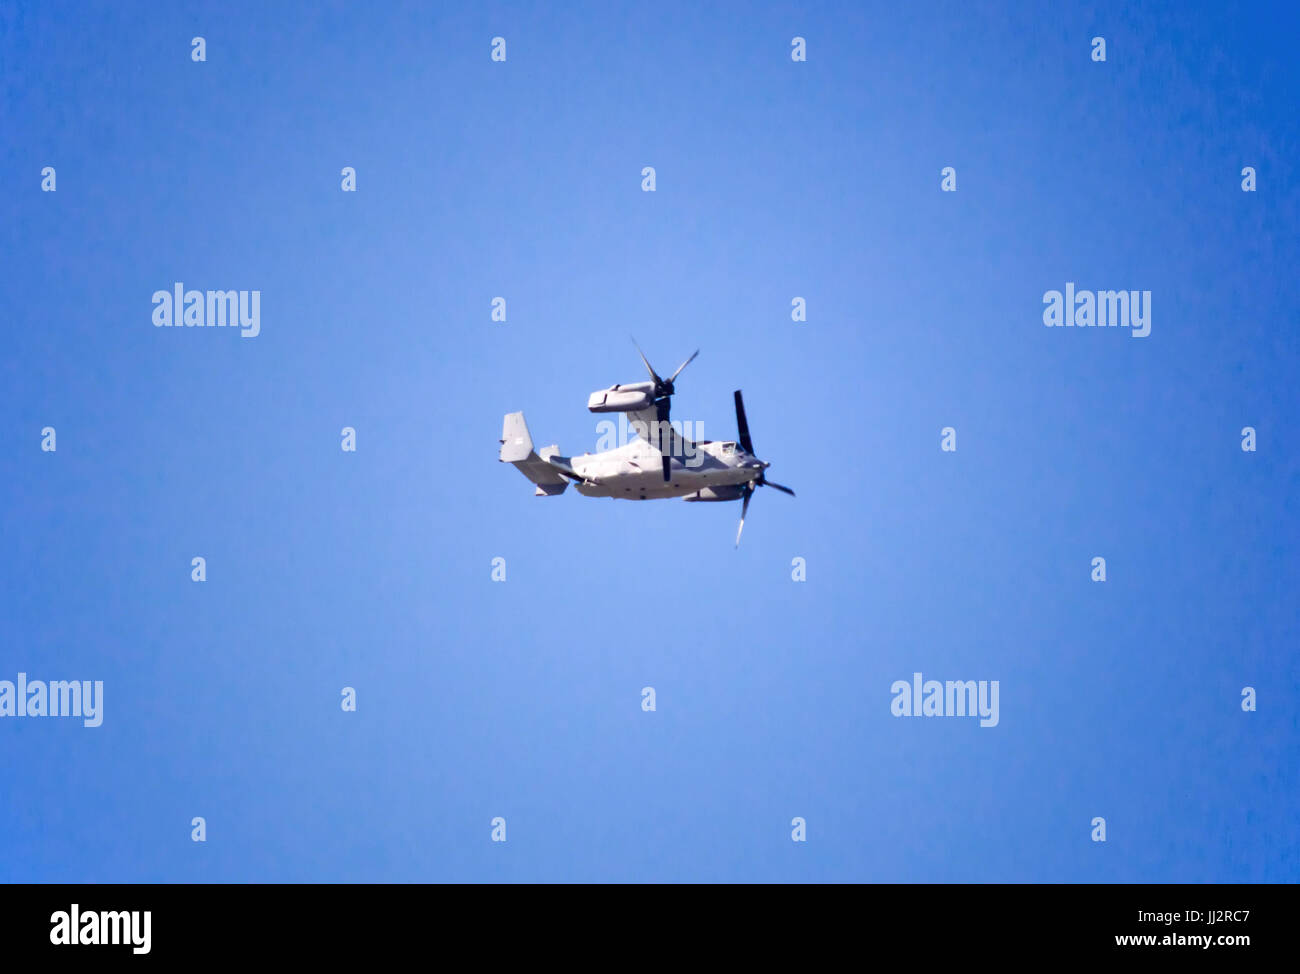 Re Configuration Stock Photos Images Alamy V 22 Osprey Engine Diagram A Military Aircraft Flying In The Airplane Image